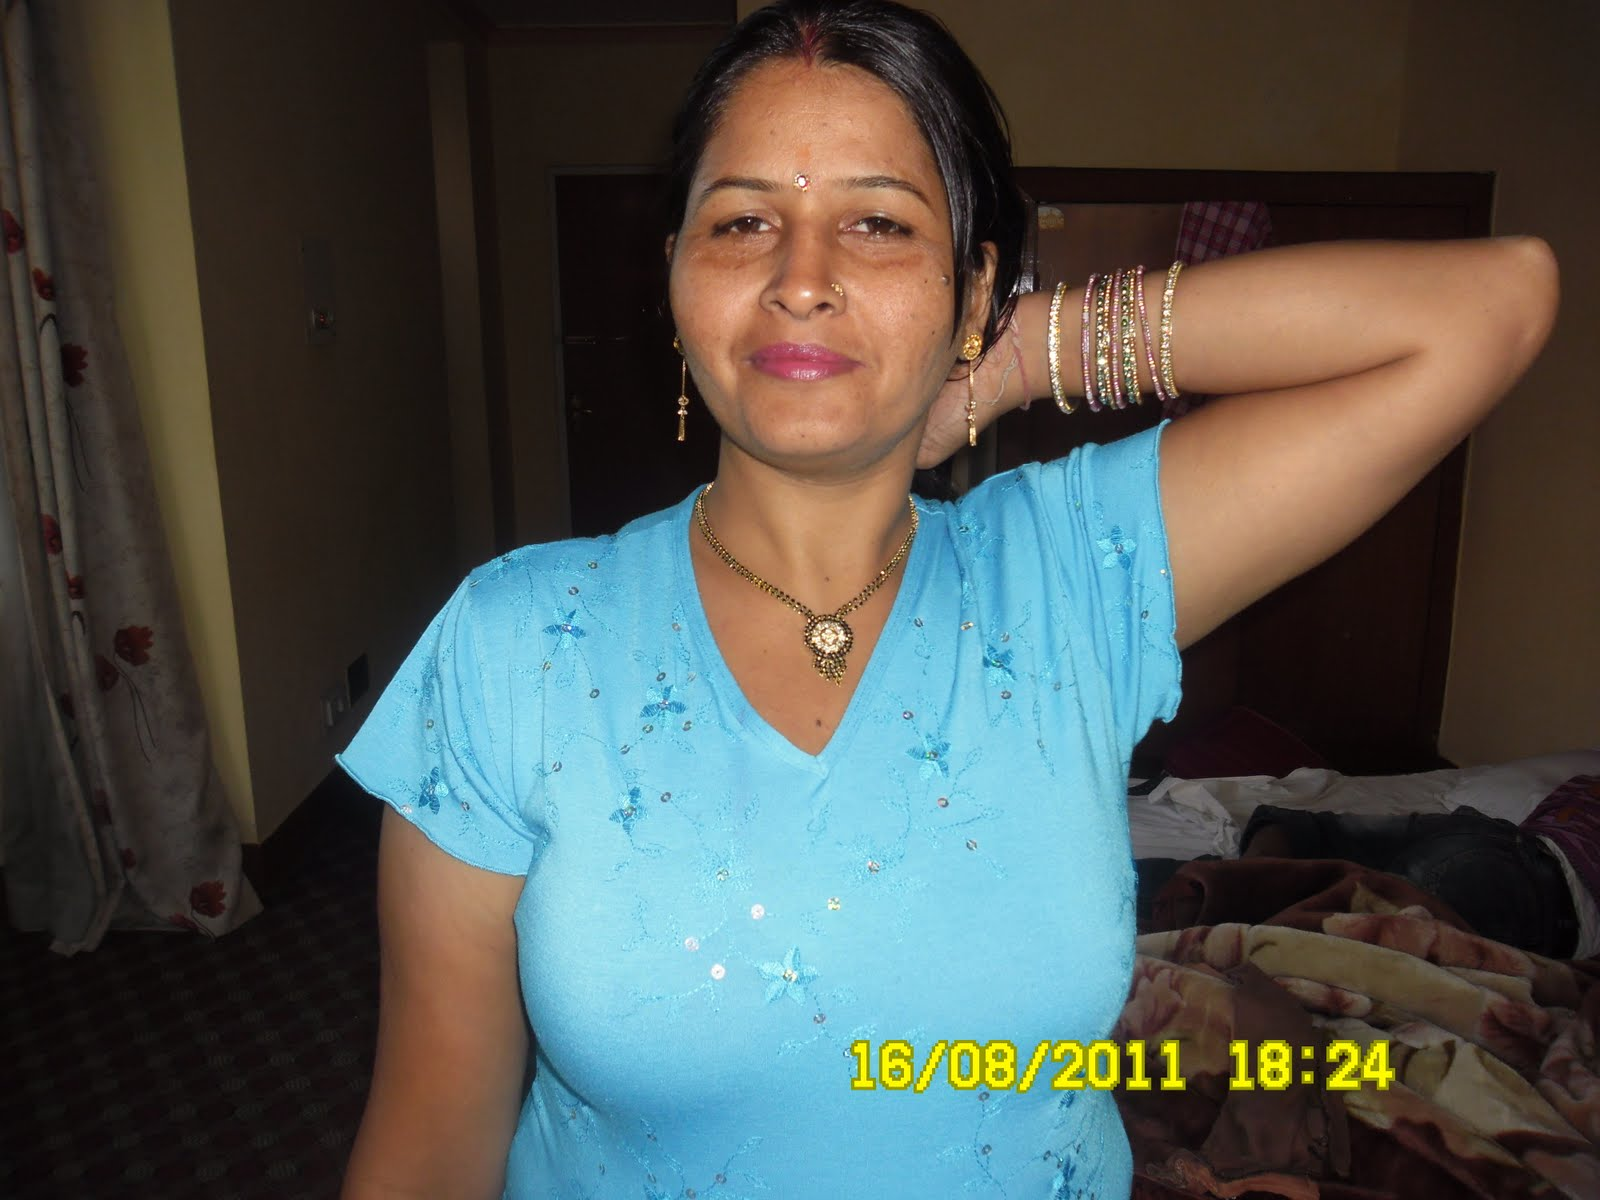 Indian Desi Young Girl   Nangi Ladki Ki Nangi Chut Ki Chudai Photos